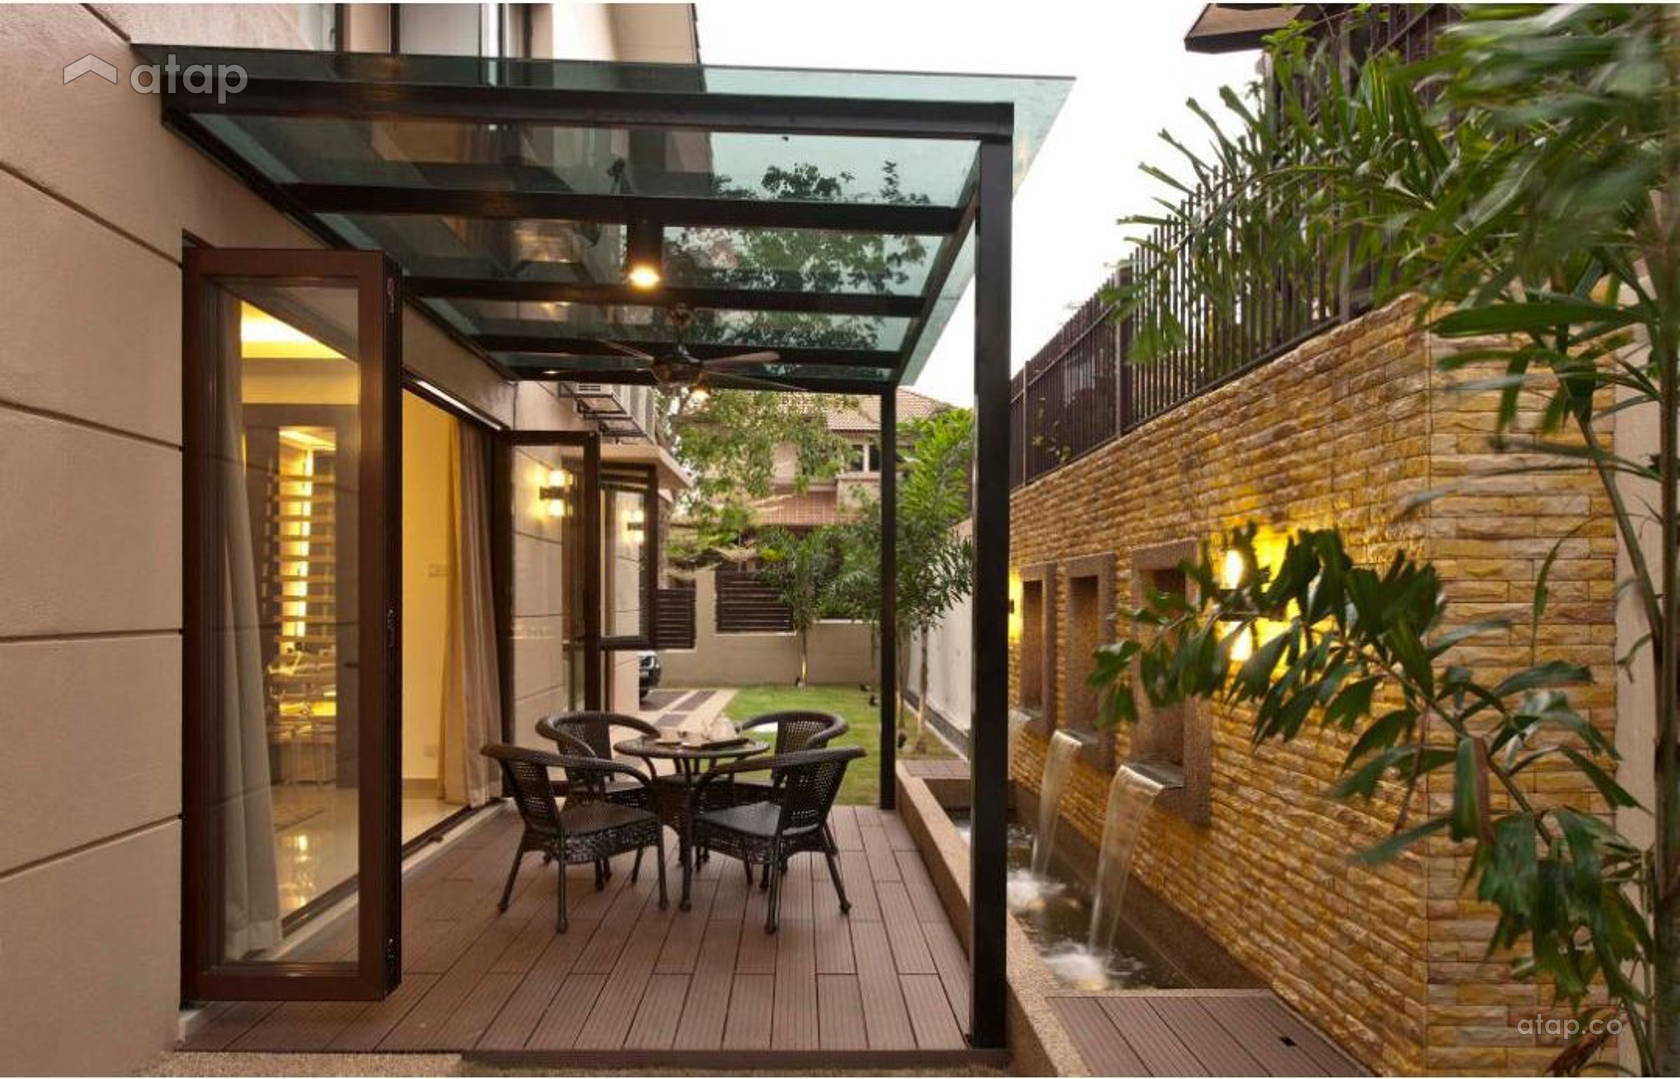 Garden Semi Detached Design Ideas Photos Malaysia Atap Co